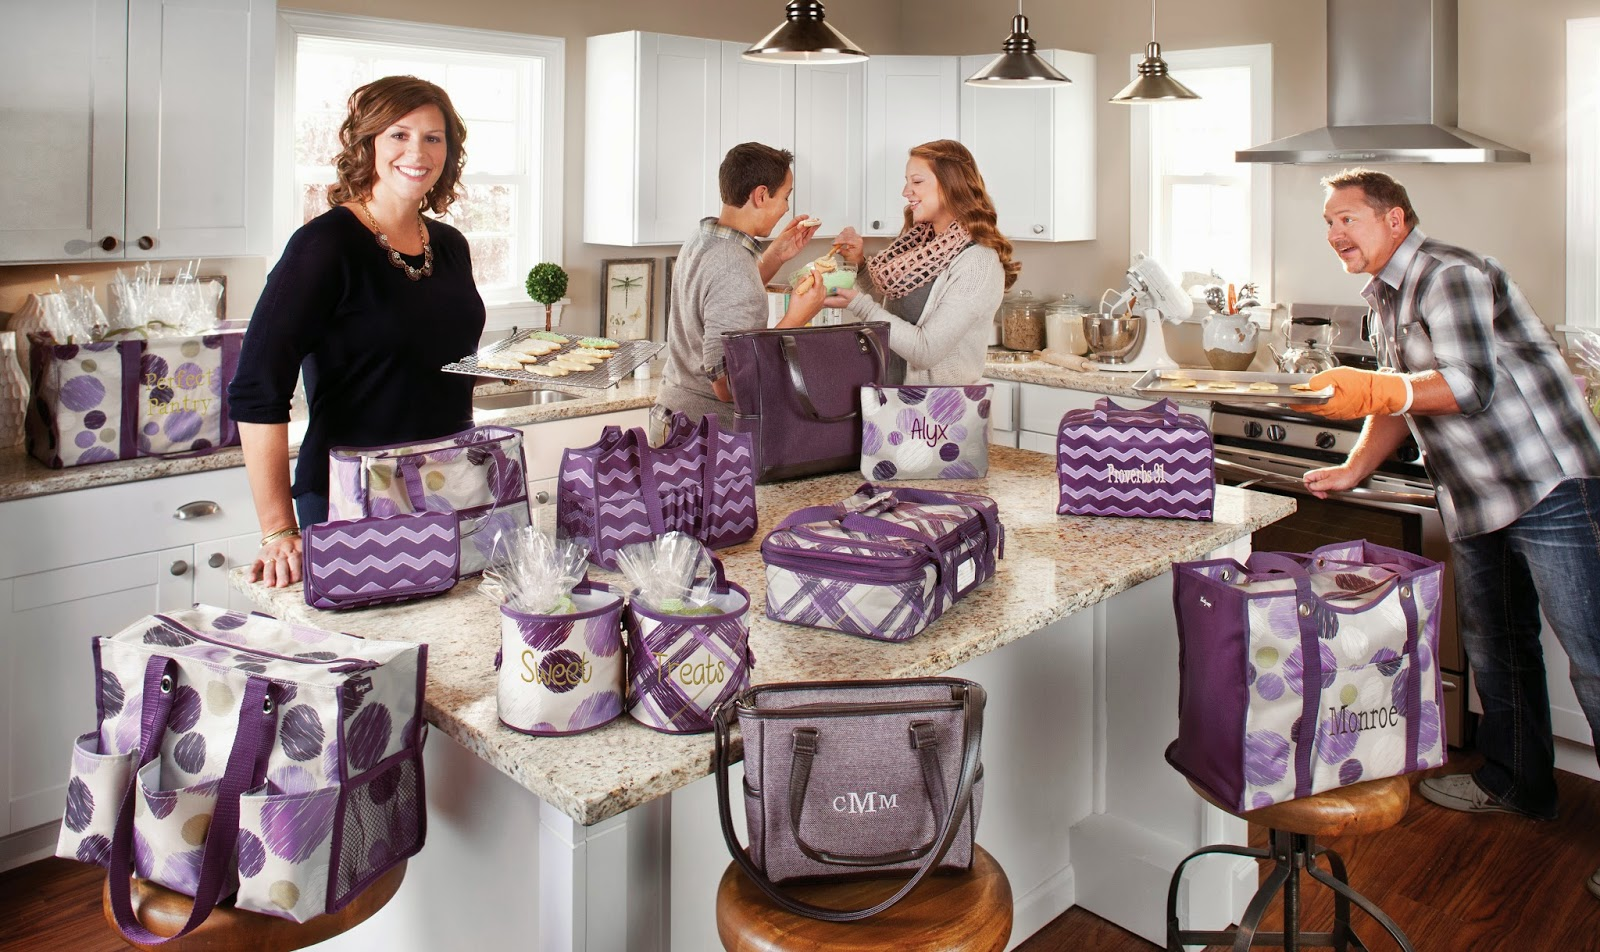 Thirty one november customer special 2014 - Cindy Monroe Founder President Ceo